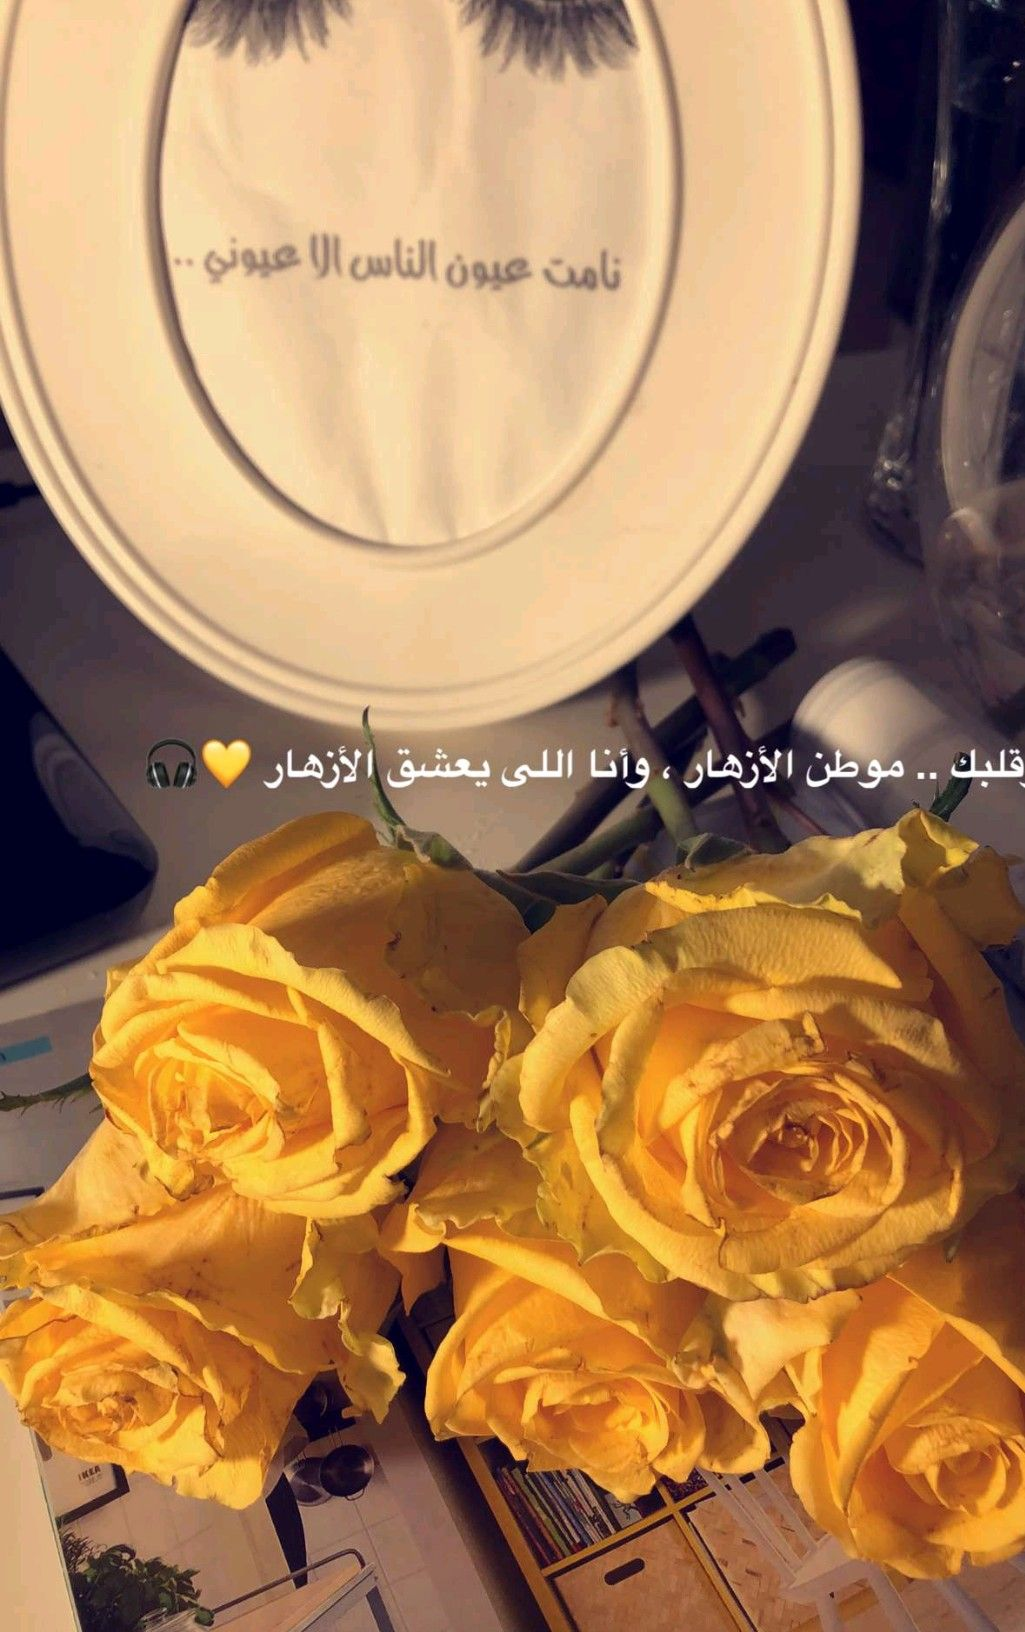 Pin By On سنابات Arabic Tattoo Quotes Quotes About Photography Arabic Love Quotes